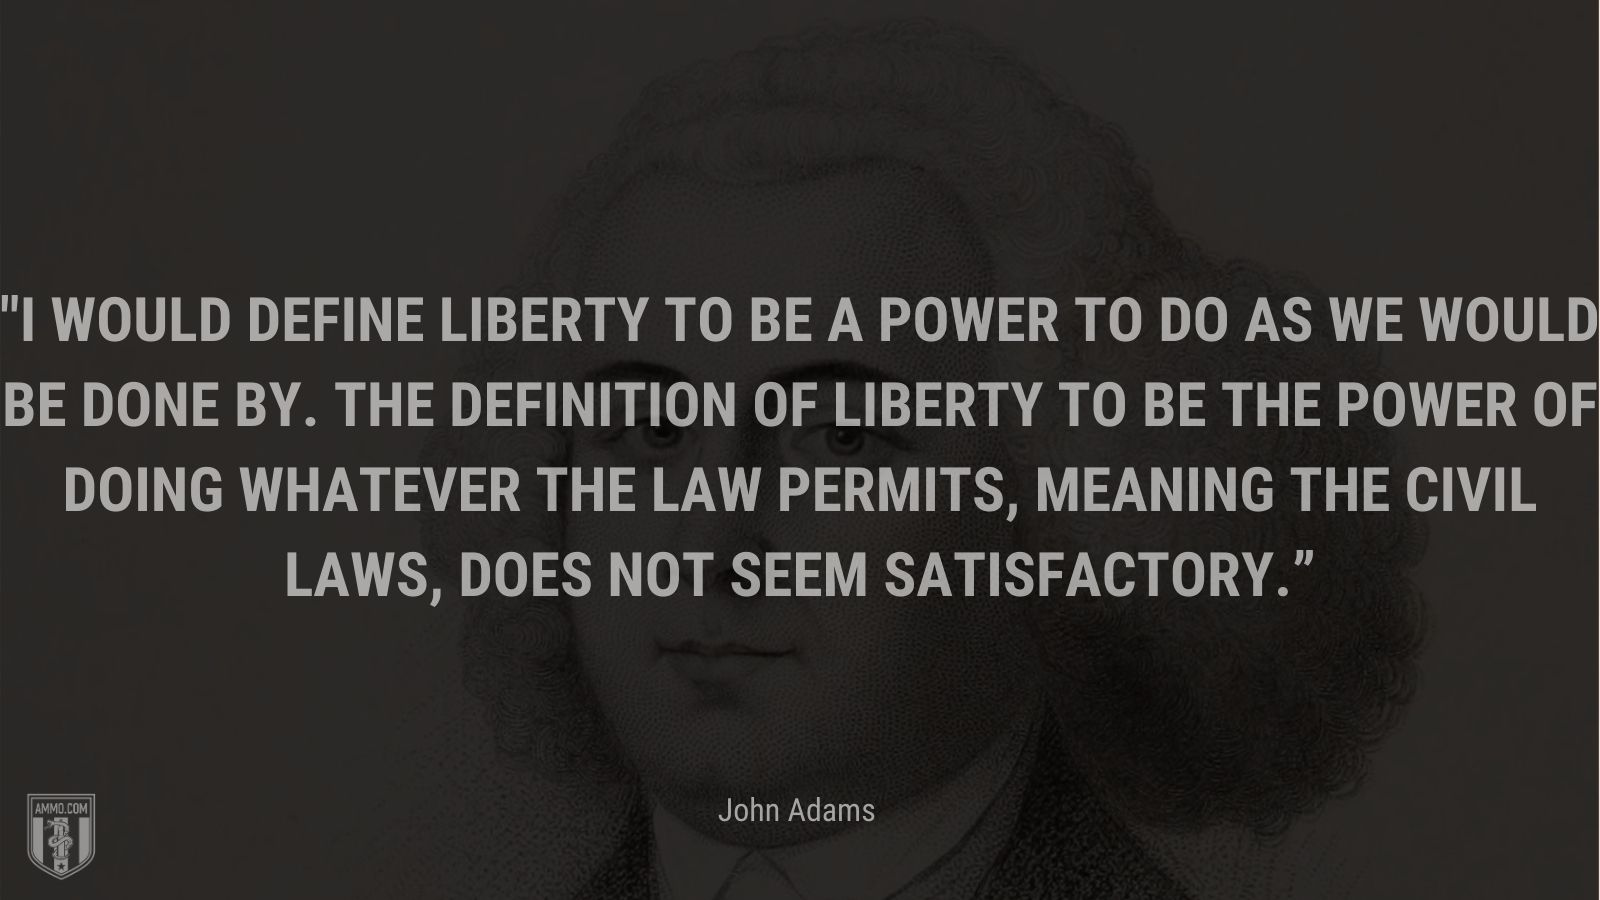 """""""I would define liberty to be a power to do as we would be done by. The definition of liberty to be the power of doing whatever the law permits, meaning the civil laws, does not seem satisfactory."""" - John Adams"""